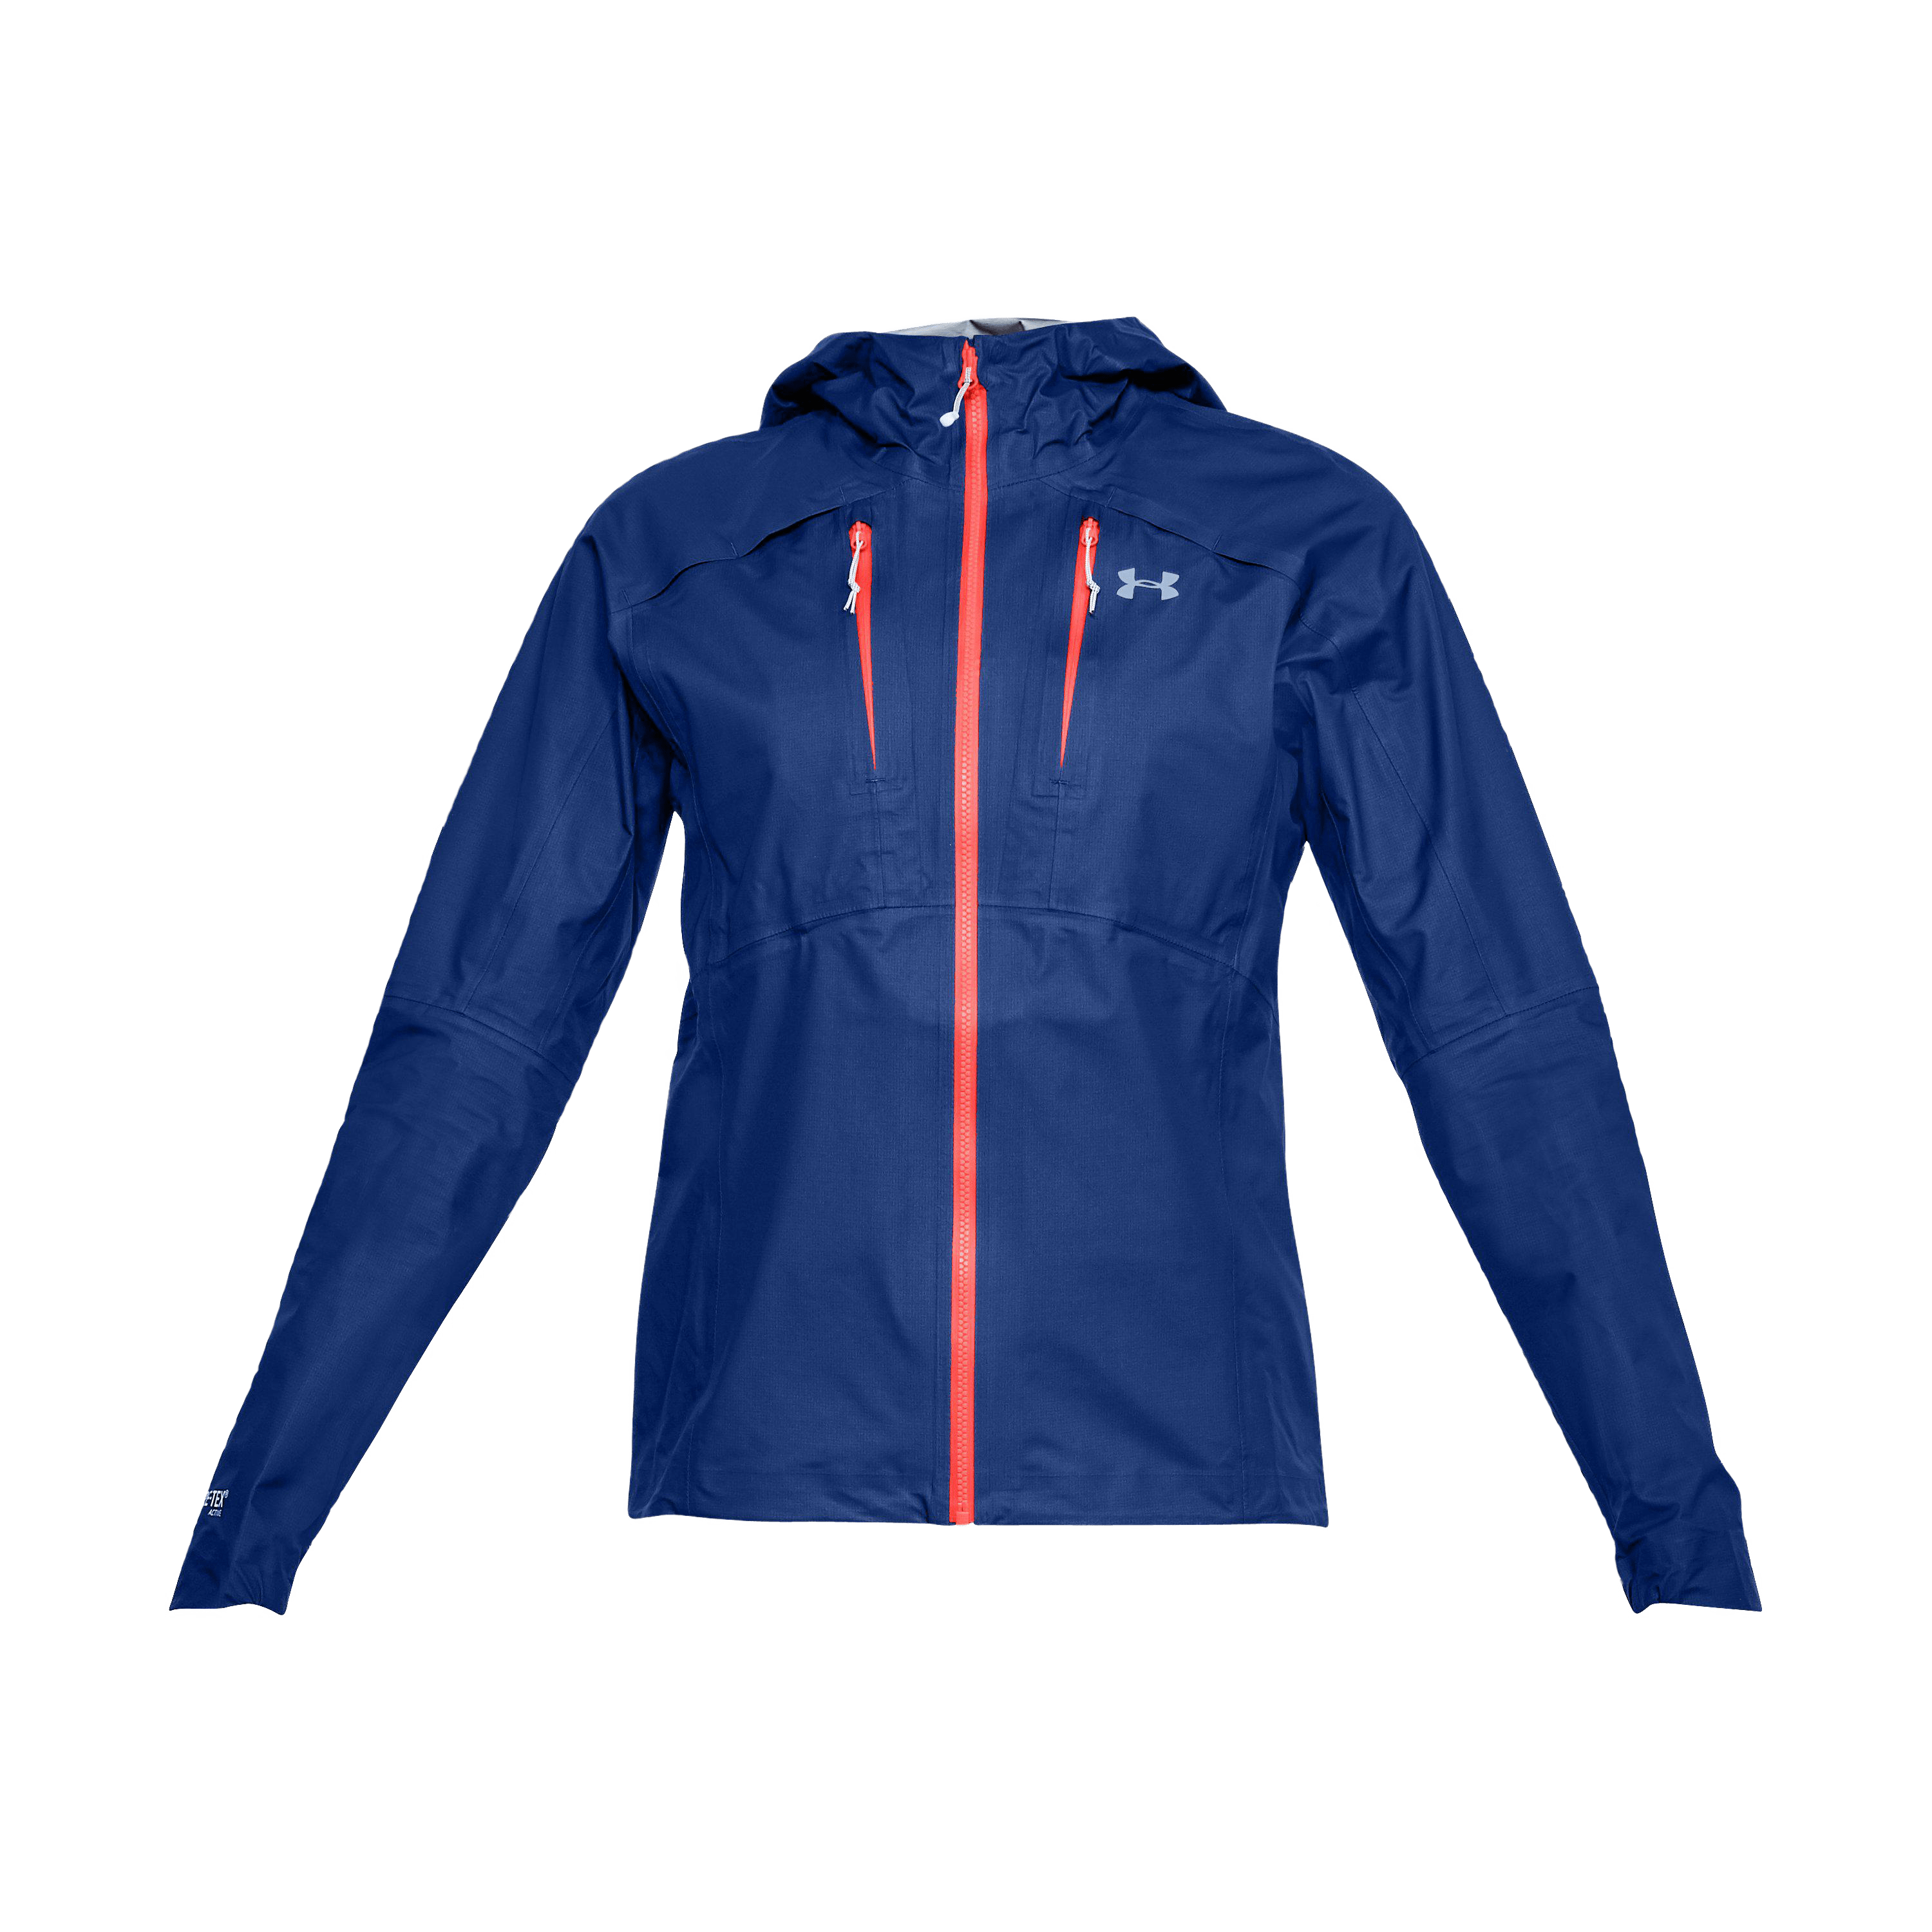 gore tex jacket drying instructions